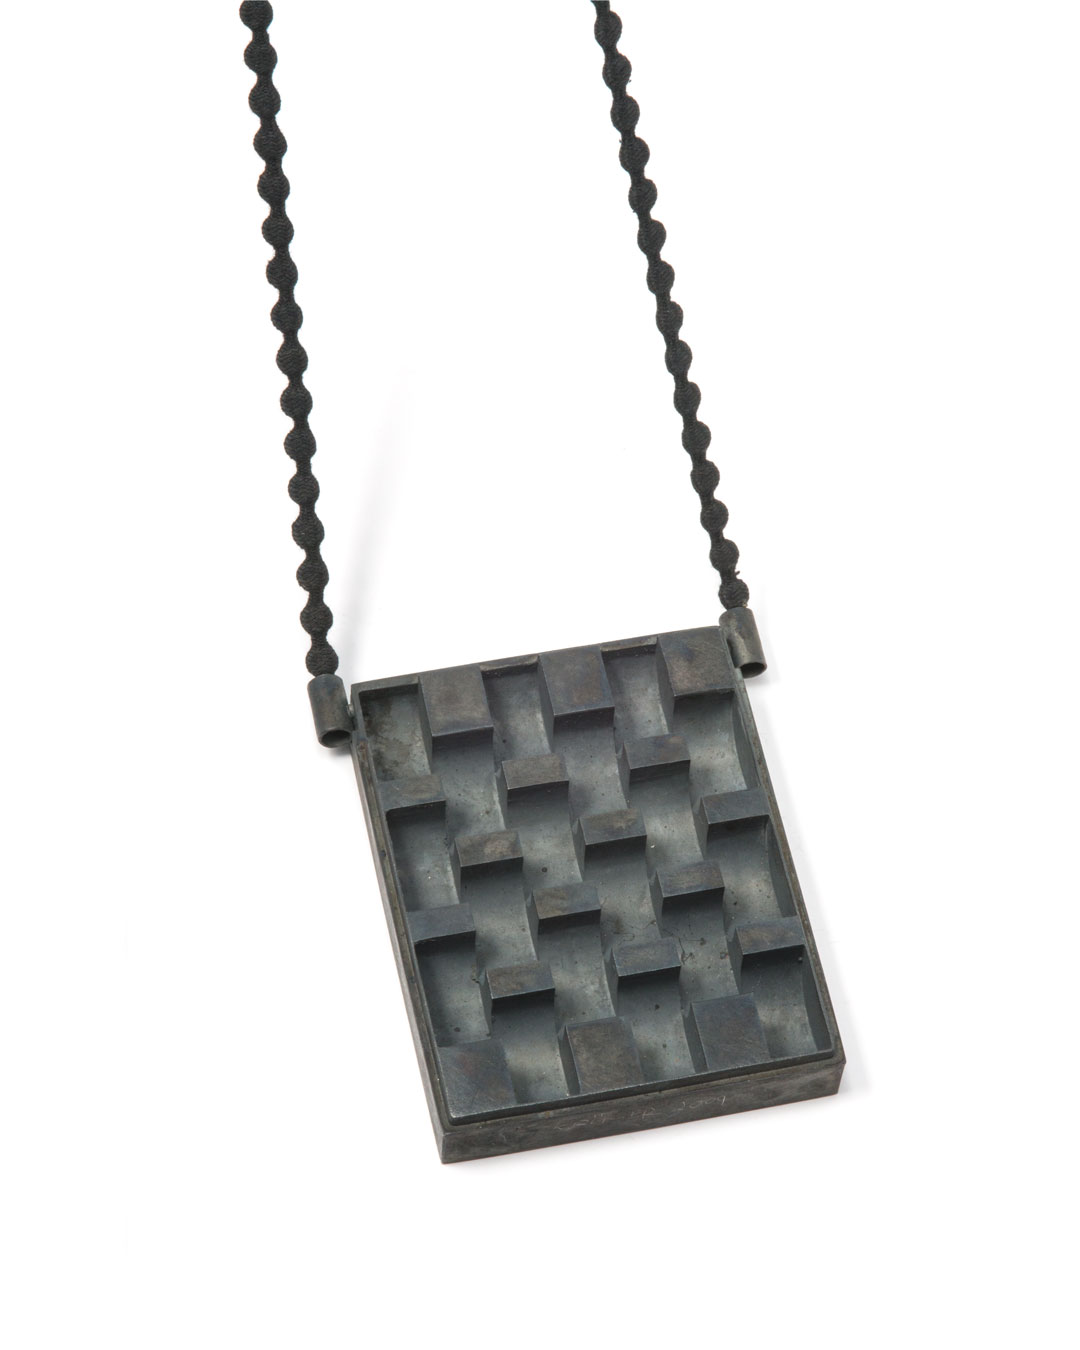 Winfried Krüger, untitled, 2009, necklace; oxidised silver, lead strapping, textile, element 80 x 100 mm, €2920